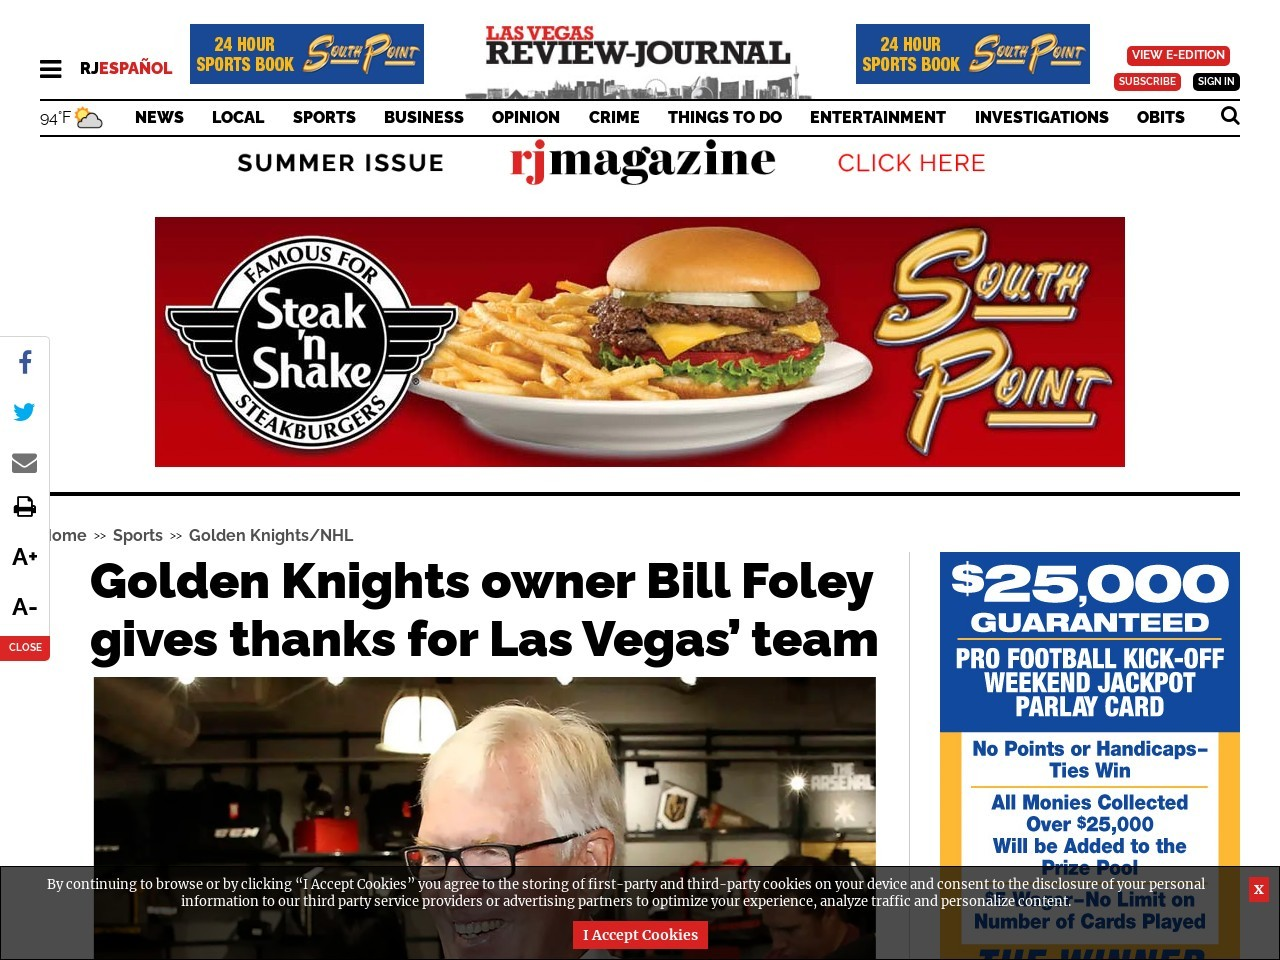 Golden Knights owner Bill Foley gives thanks for Las Vegas' team